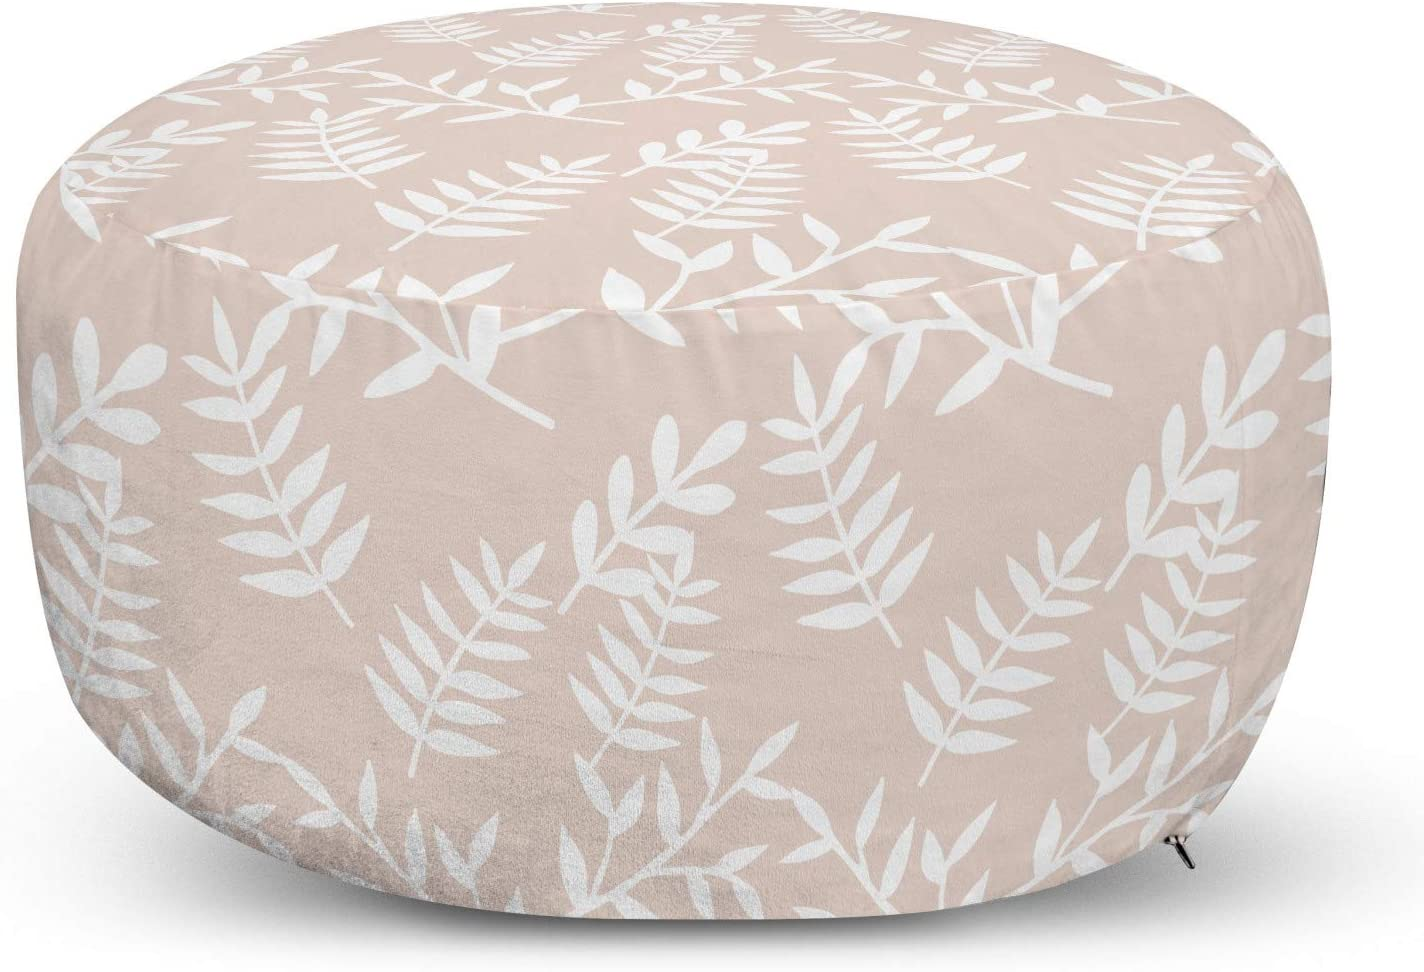 Indianapolis Mall Inventory cleanup selling sale Lunarable Plant Ottoman Pouf Soft Colored Repet Pastel Abstract